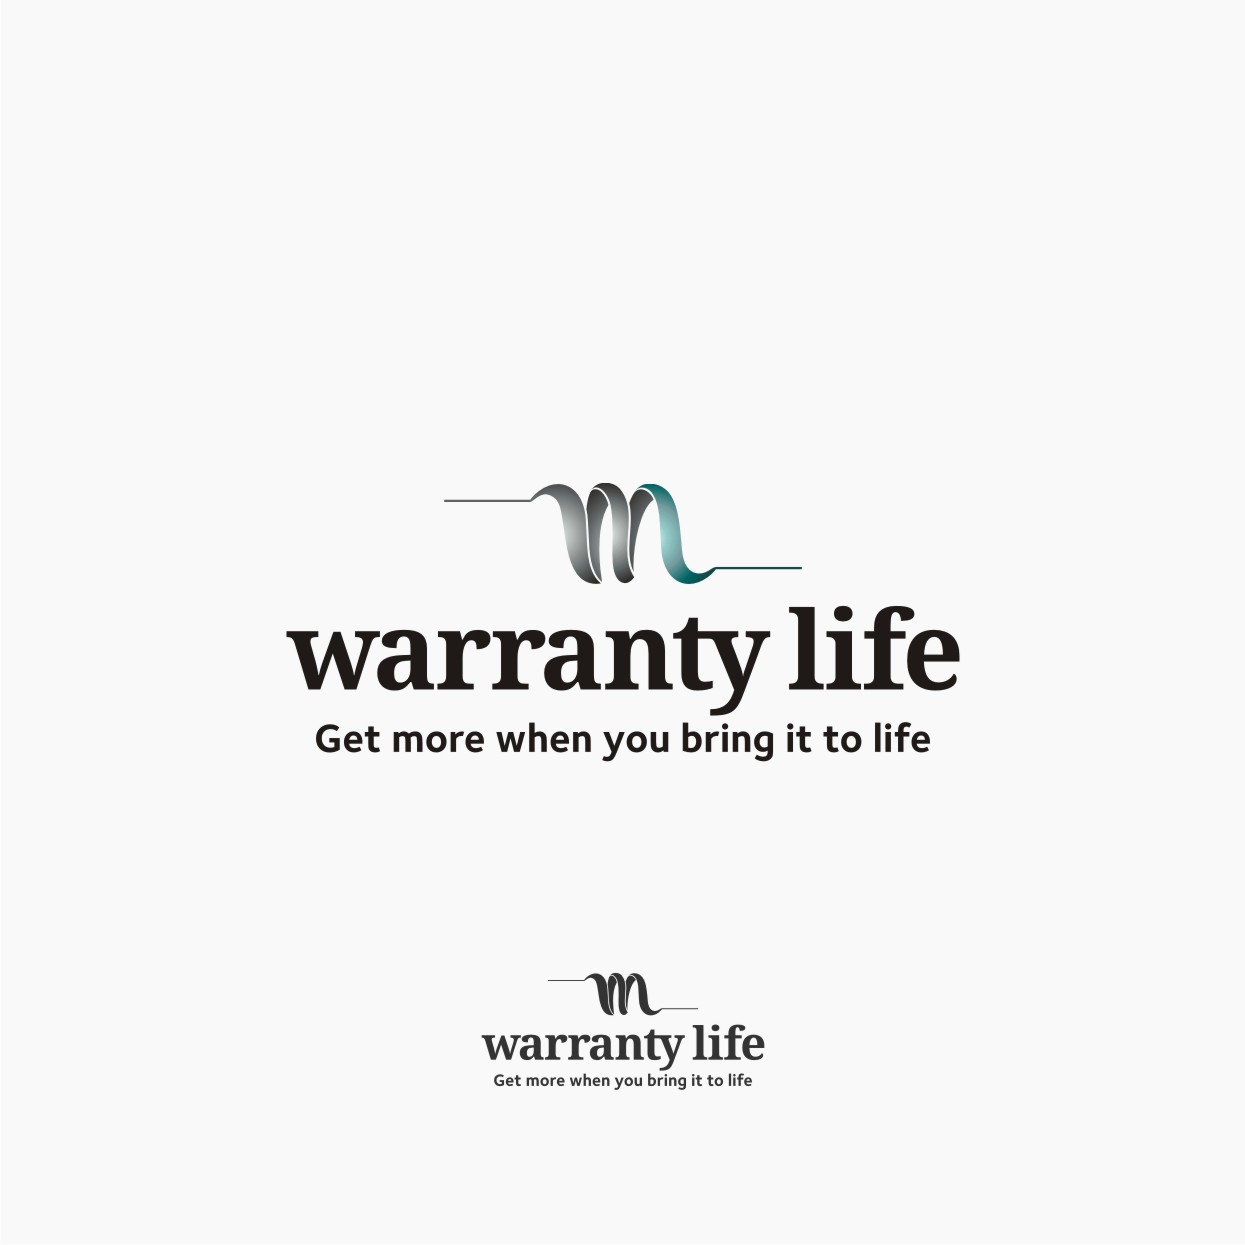 Logo Design by graphicleaf - Entry No. 61 in the Logo Design Contest WarrantyLife Logo Design.